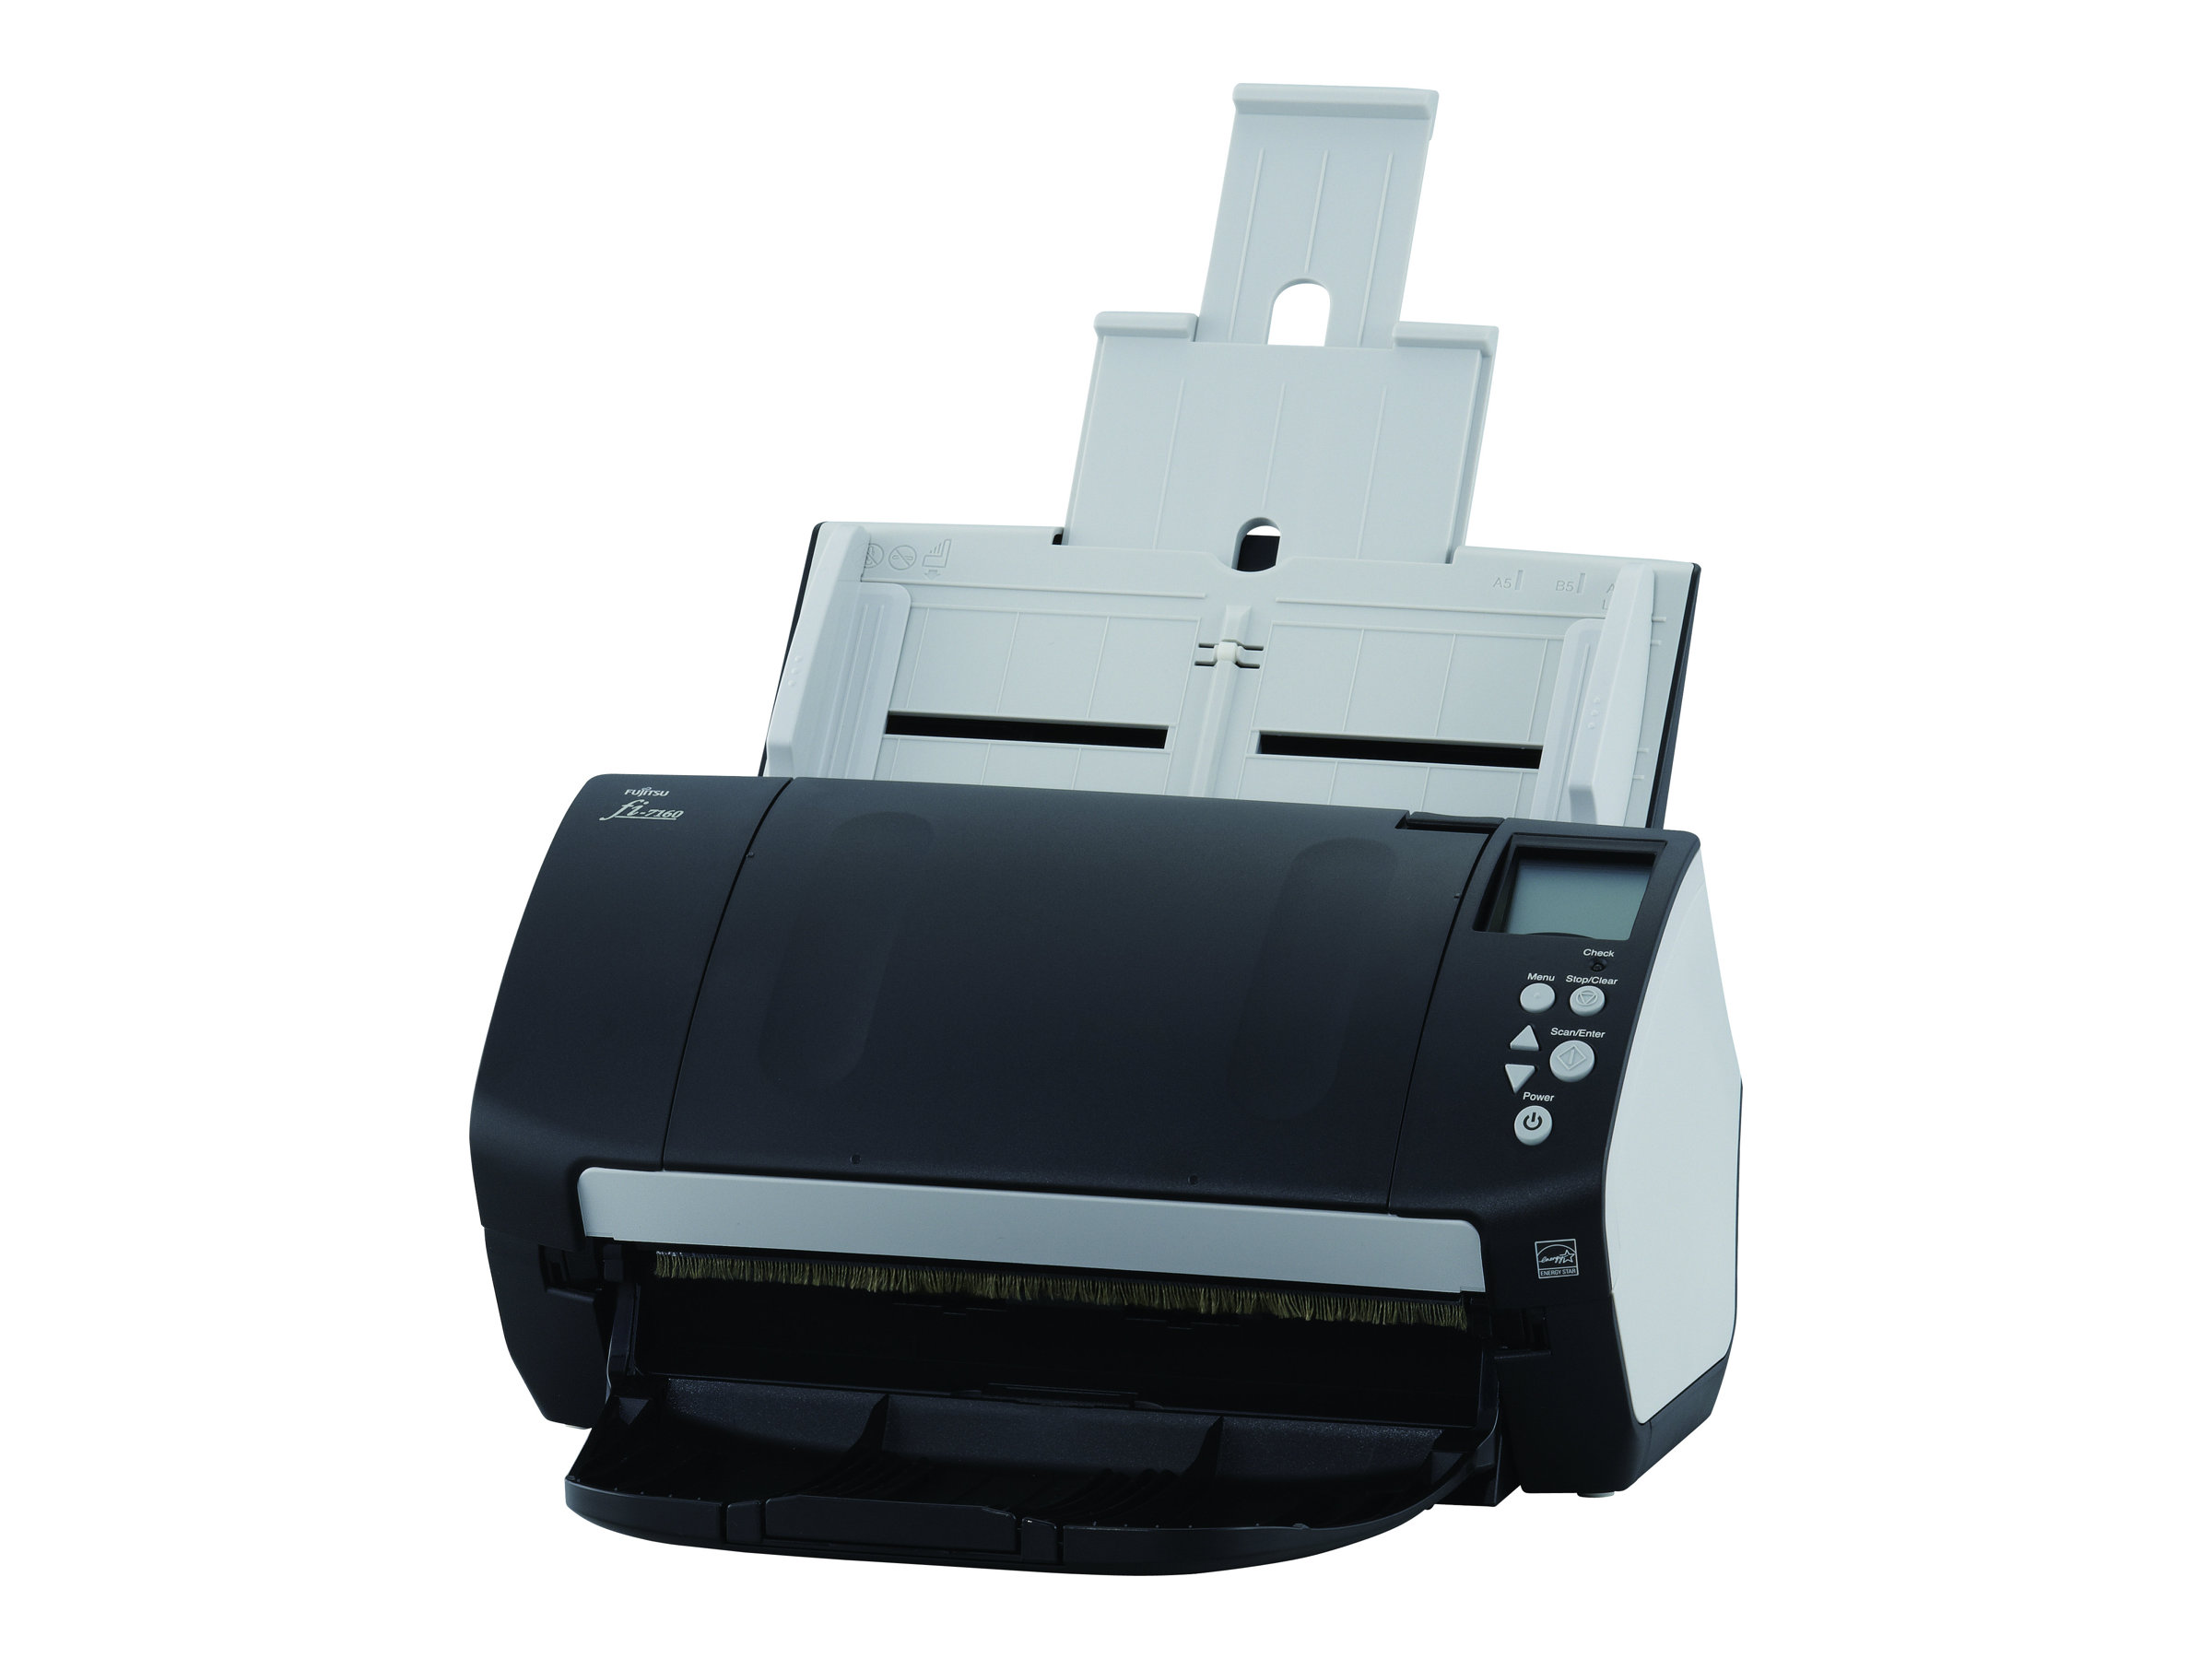 Fujitsu fi-7160 - document scanner - desktop - USB 3.0